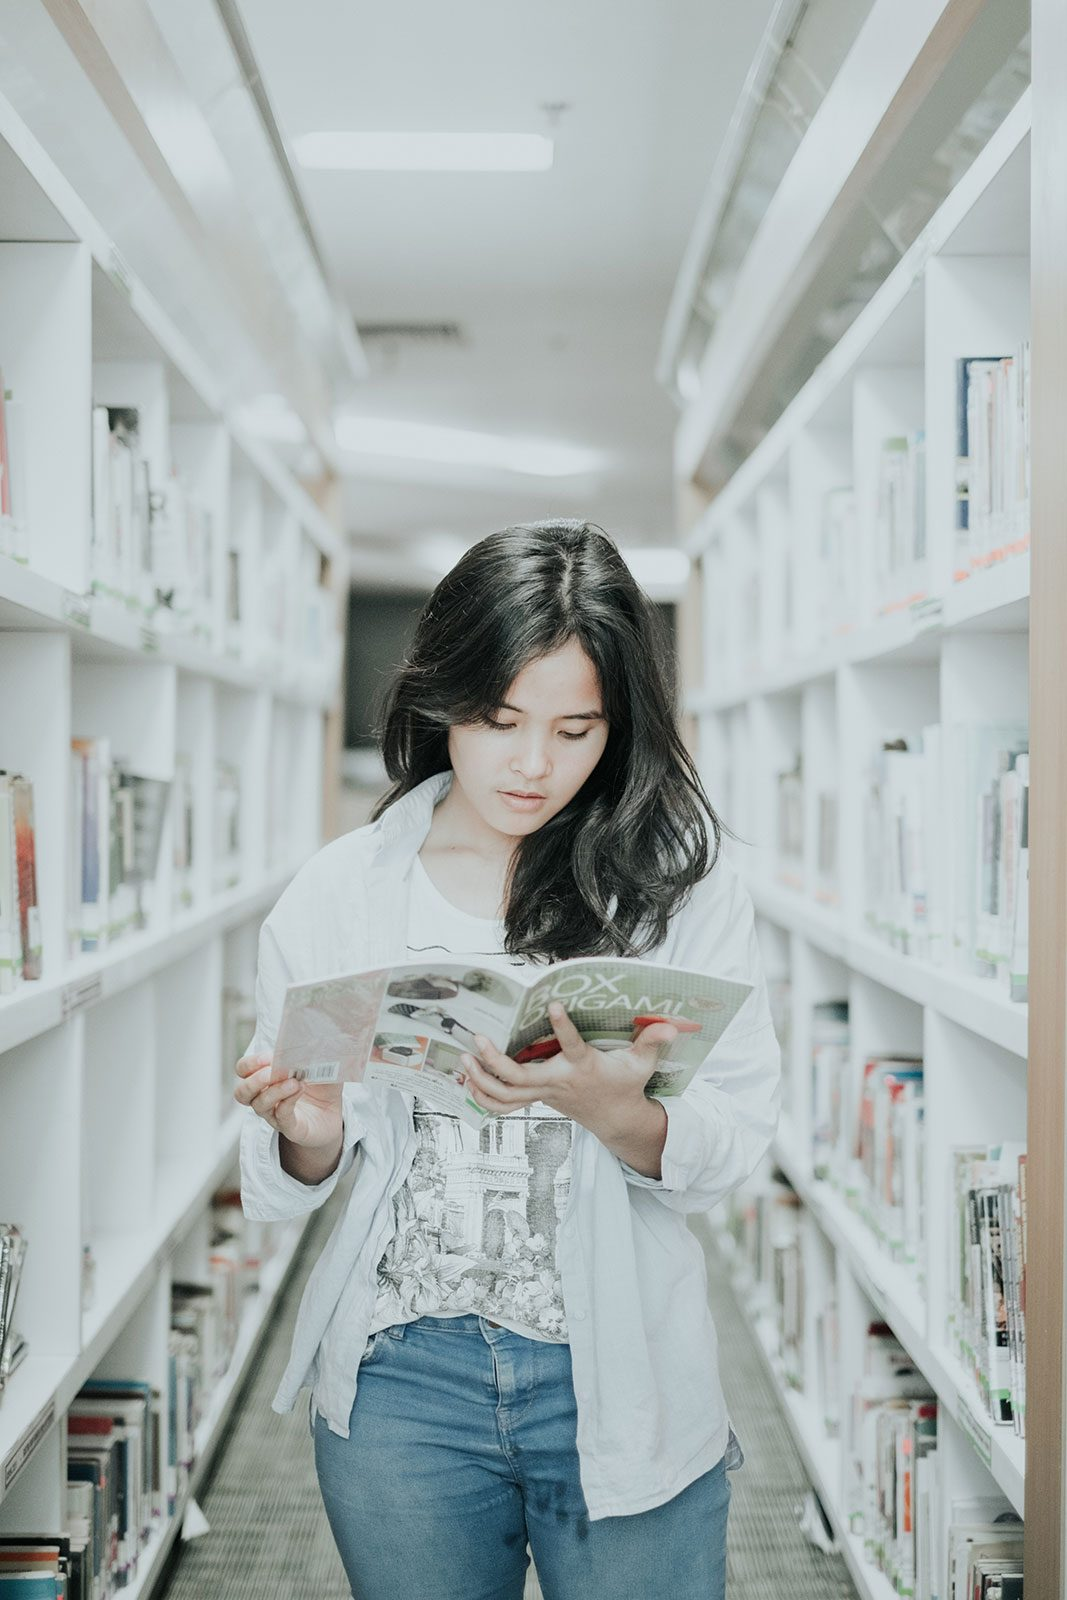 Female student in library reading a book